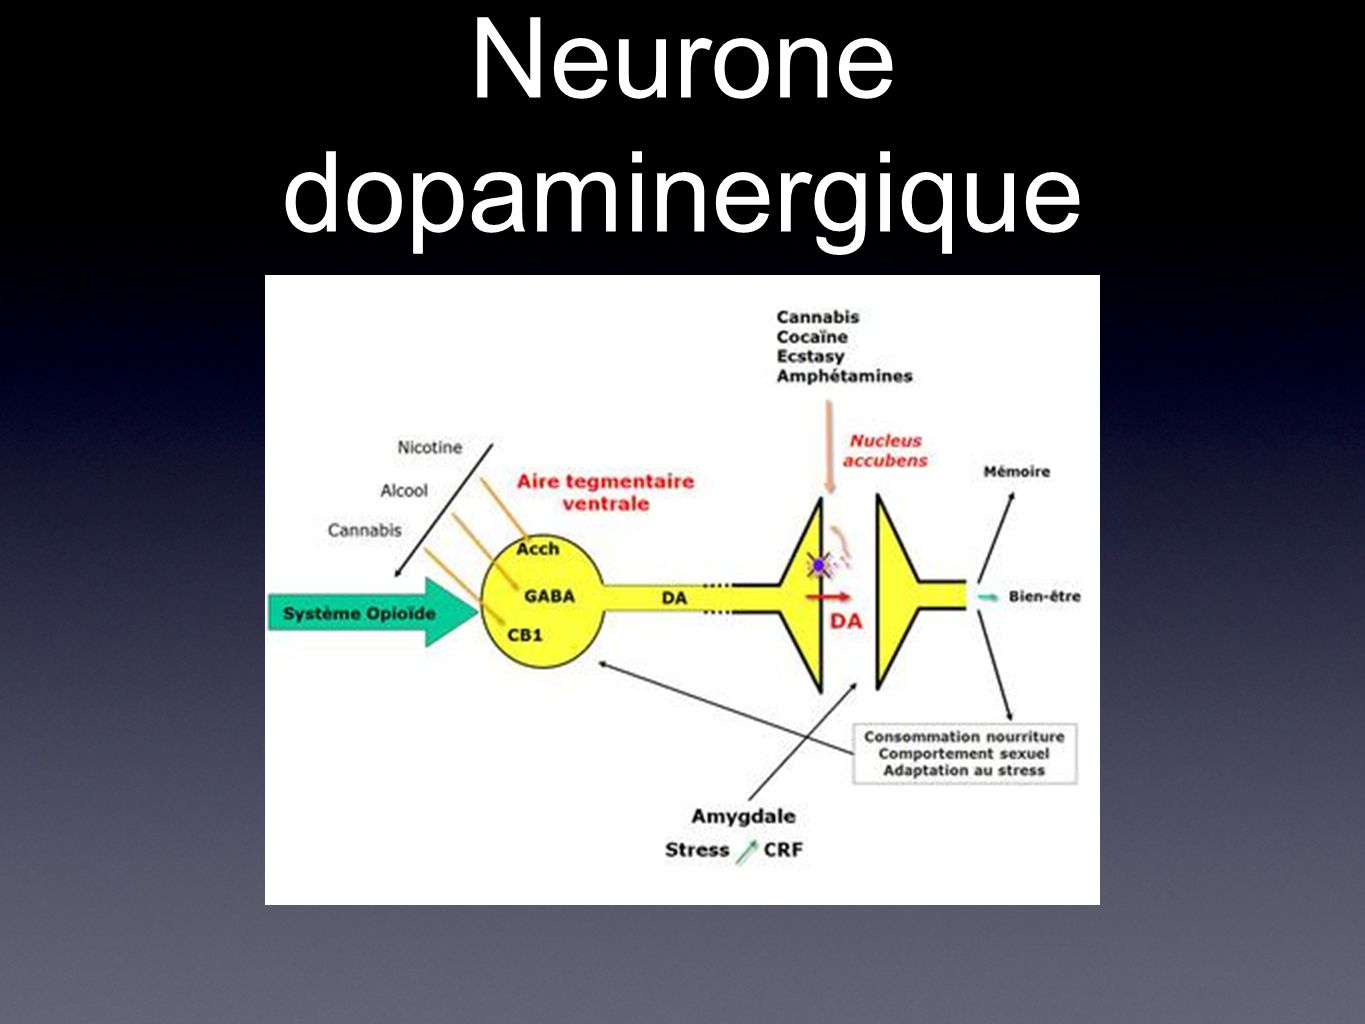 Neurone dopaminergique